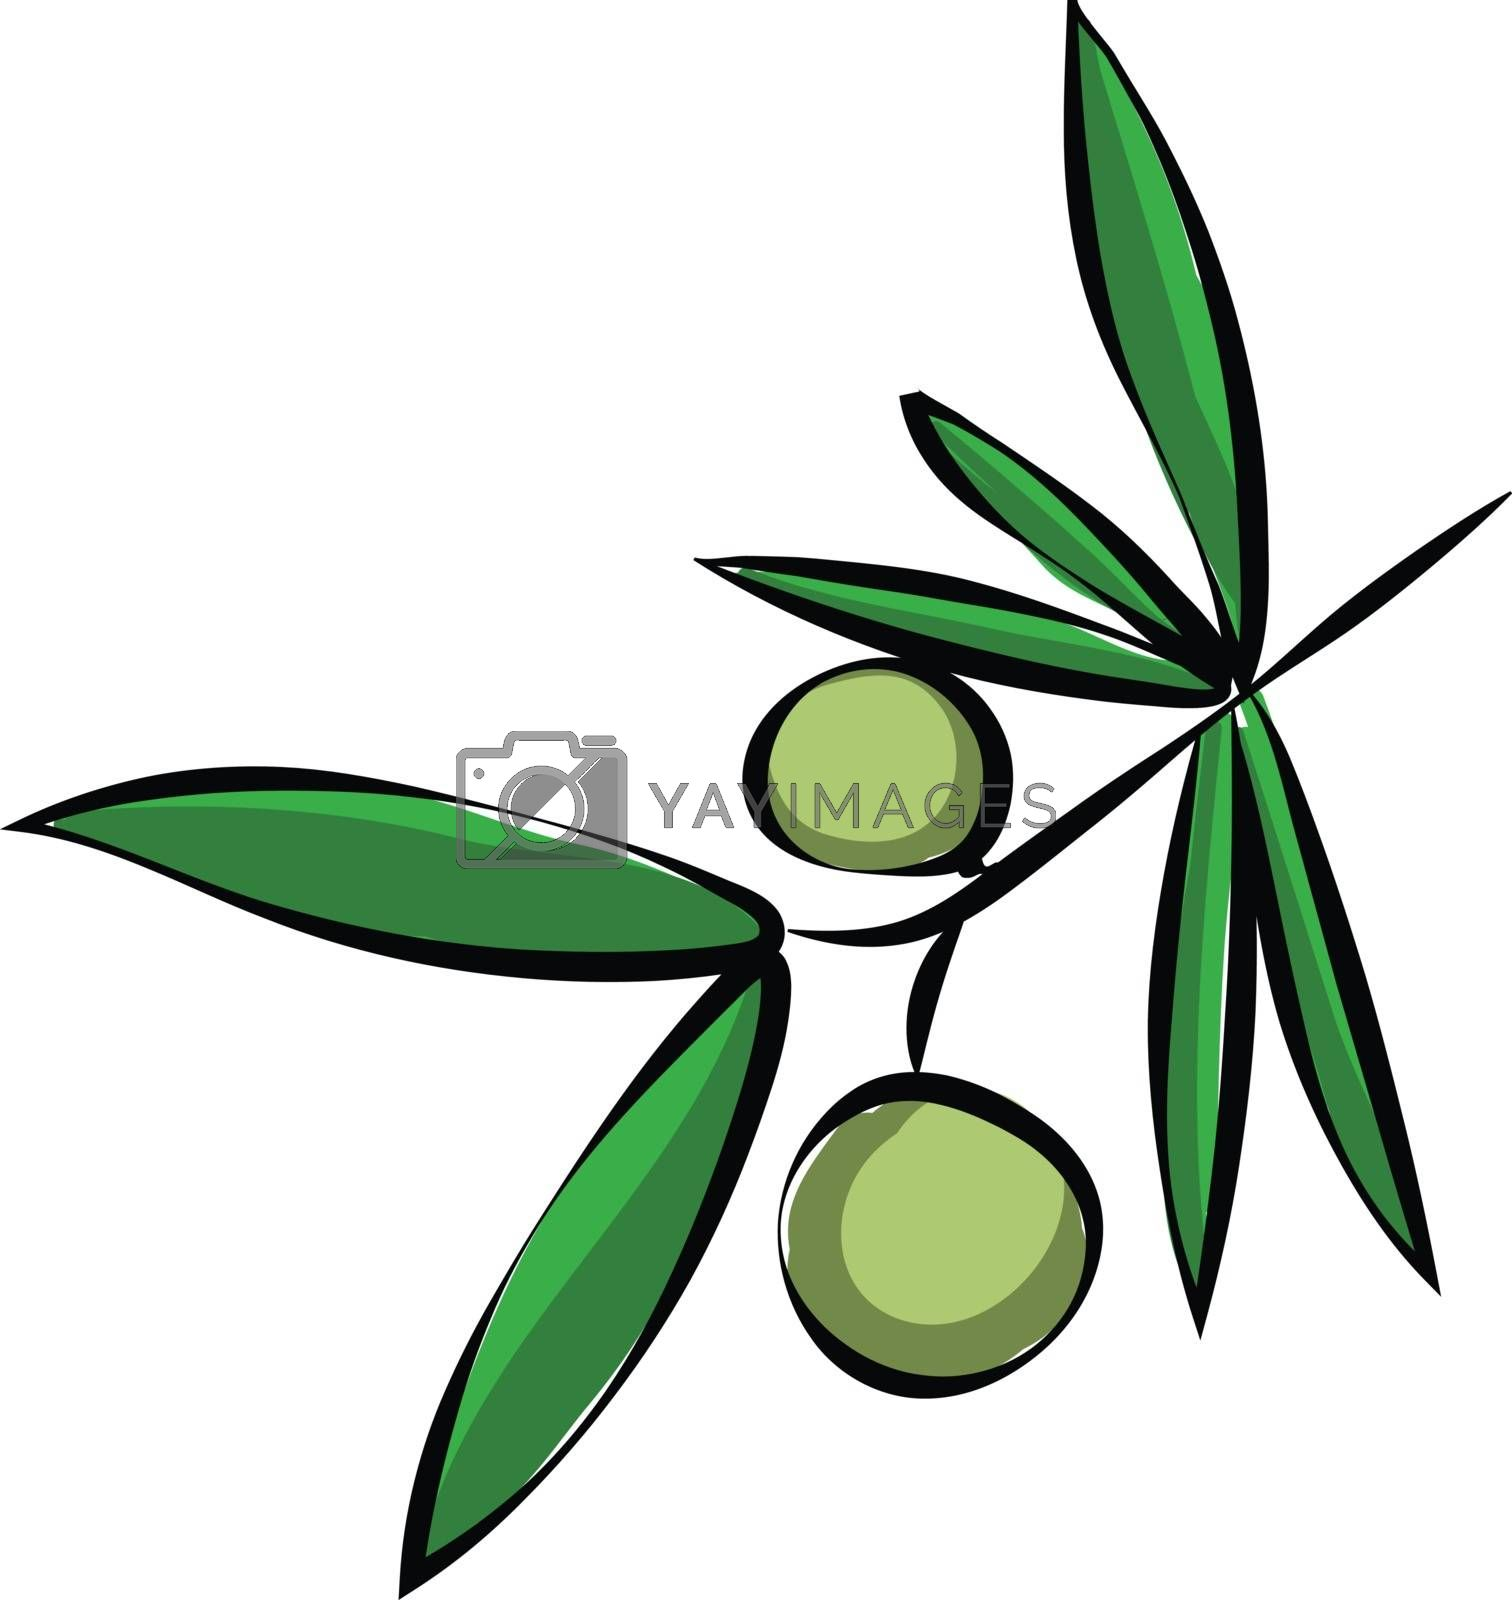 Royalty free image of Branch of an olive tree with two olives on it/Olive branch with  by Morphart